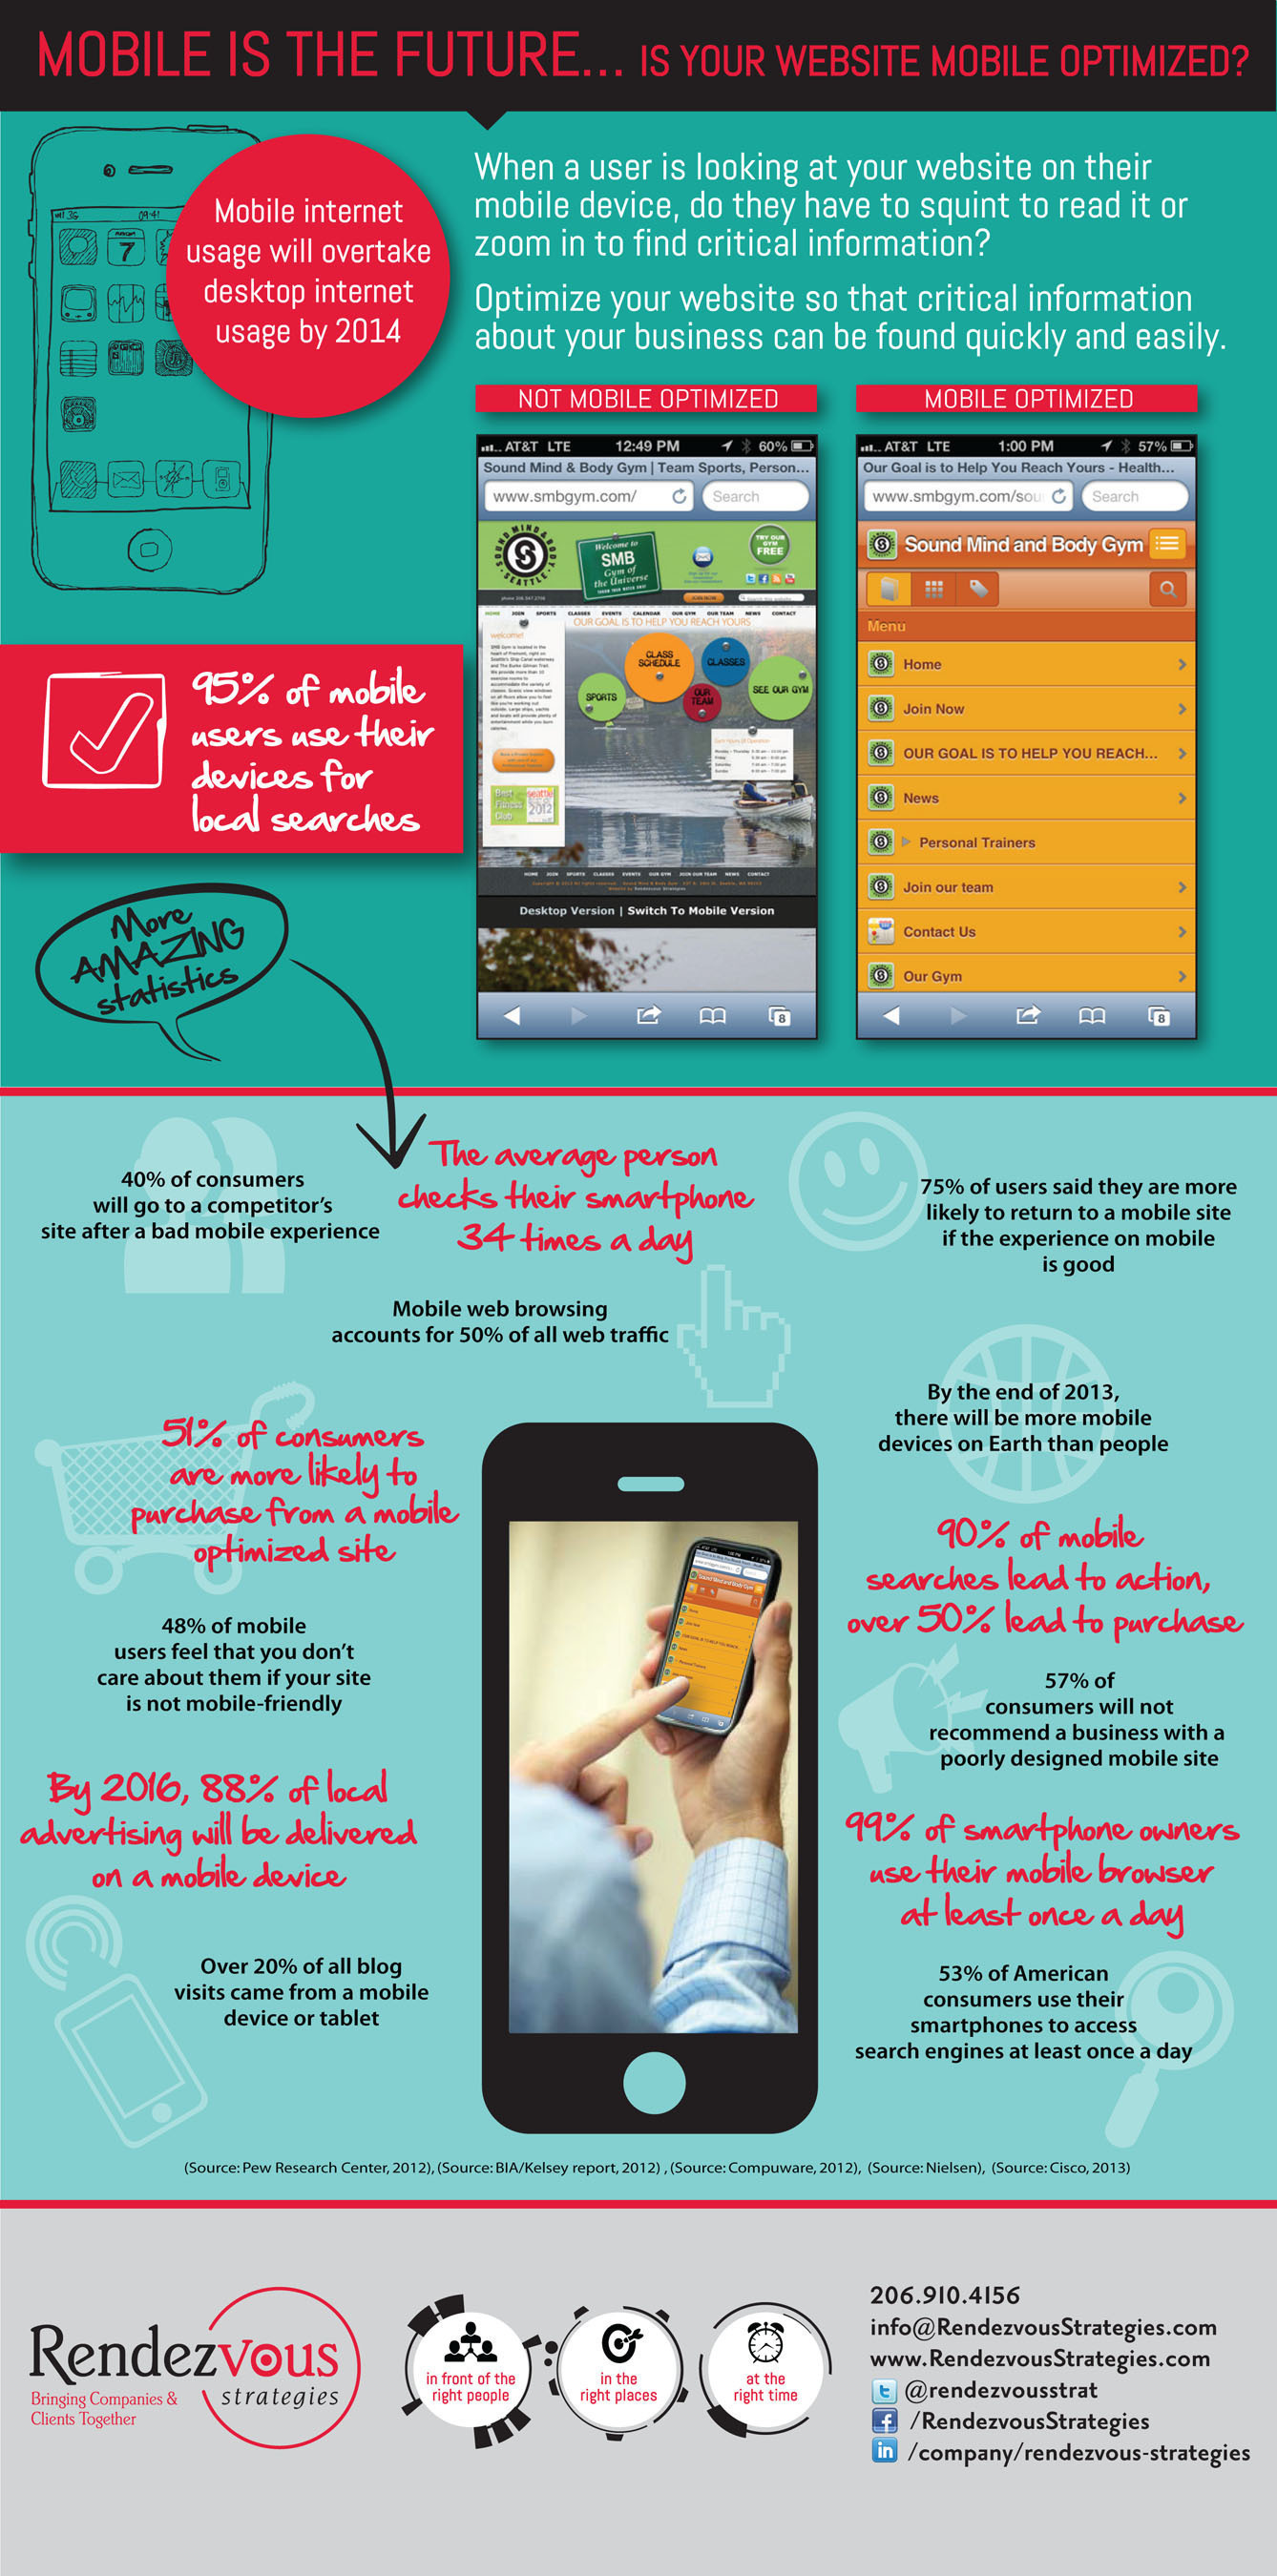 Infographic - Is Your Website Mobile Optimized?  (PRNewsFoto/Rendezvous Strategies)